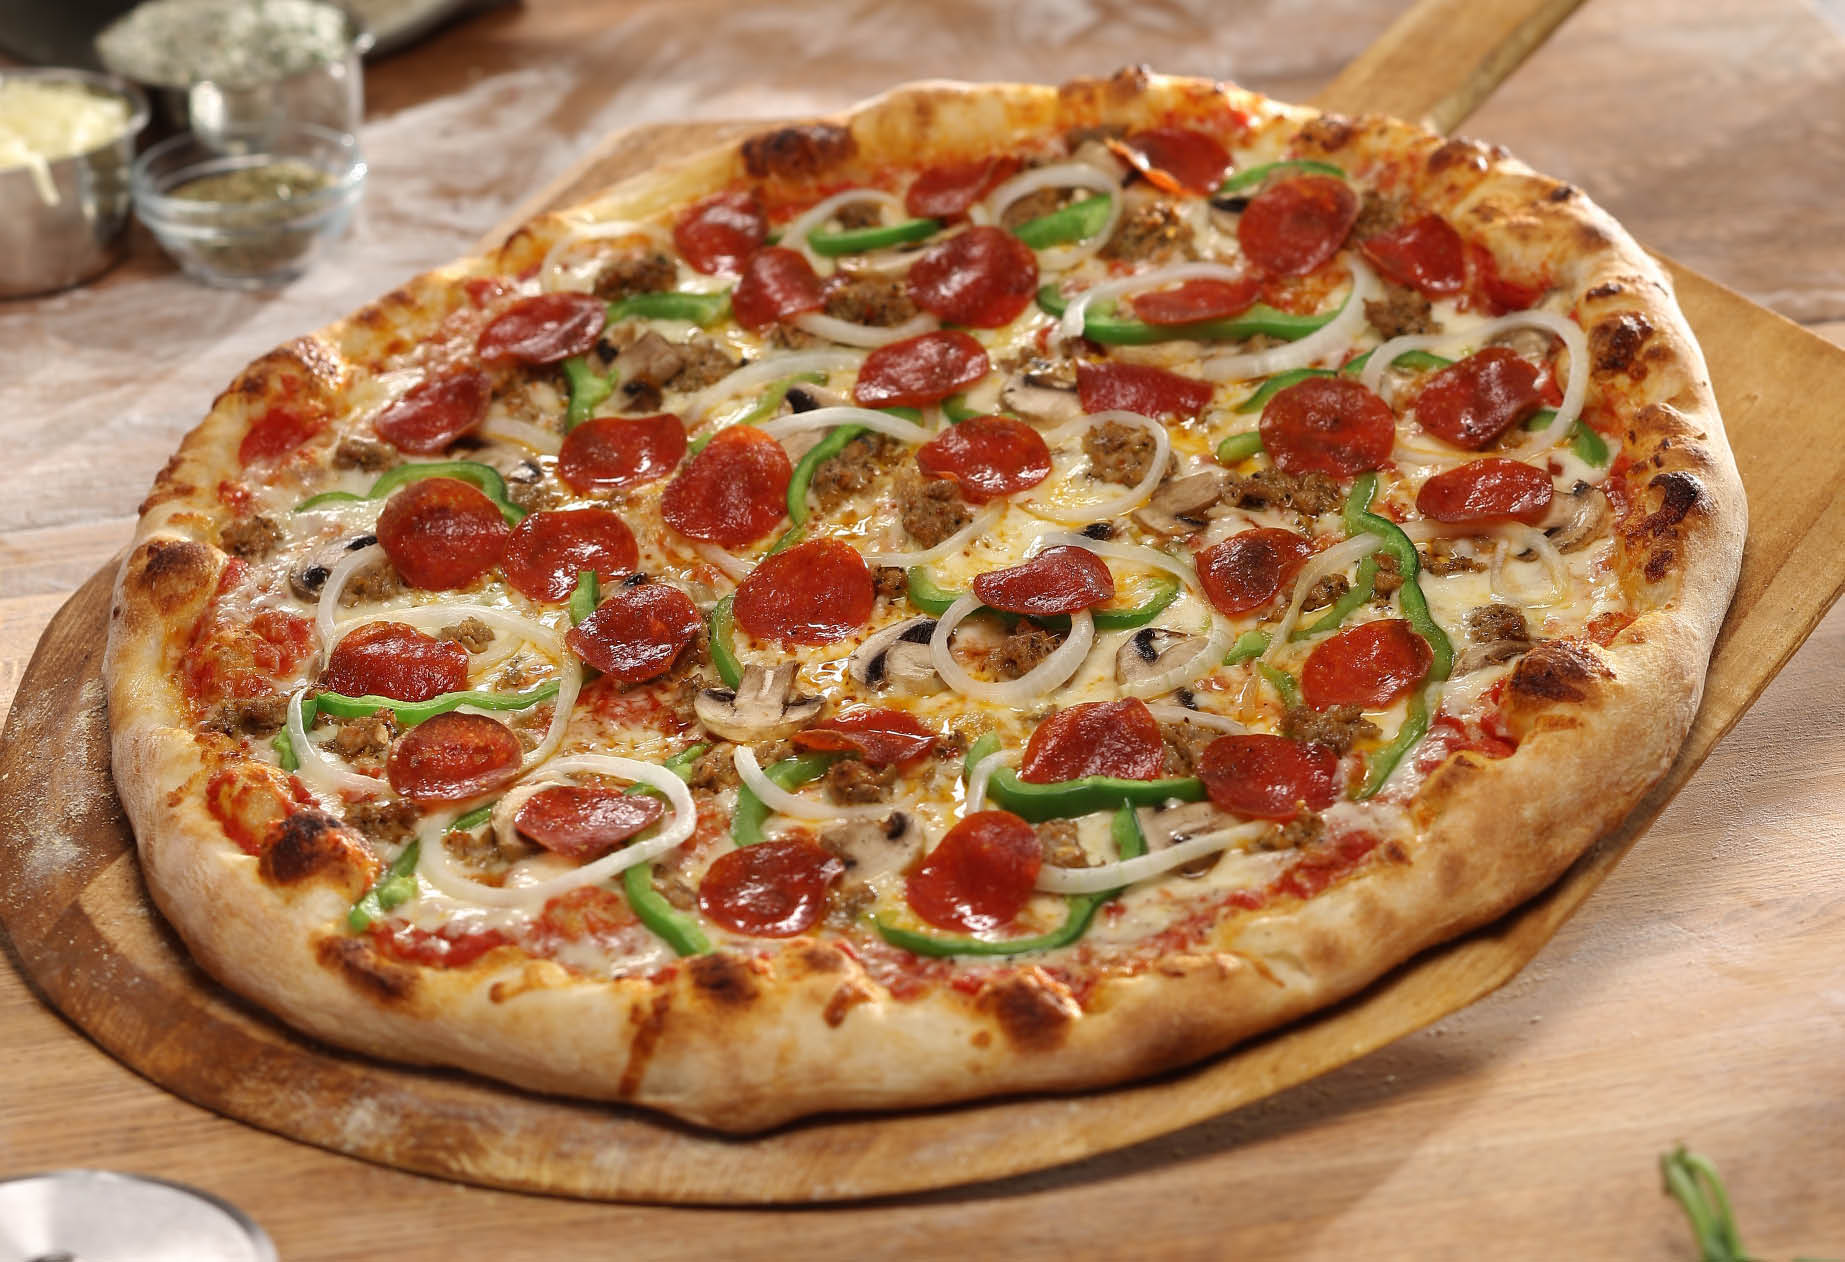 Italian Foods Near Me: Pizza Near Me - Restaurant Coupons